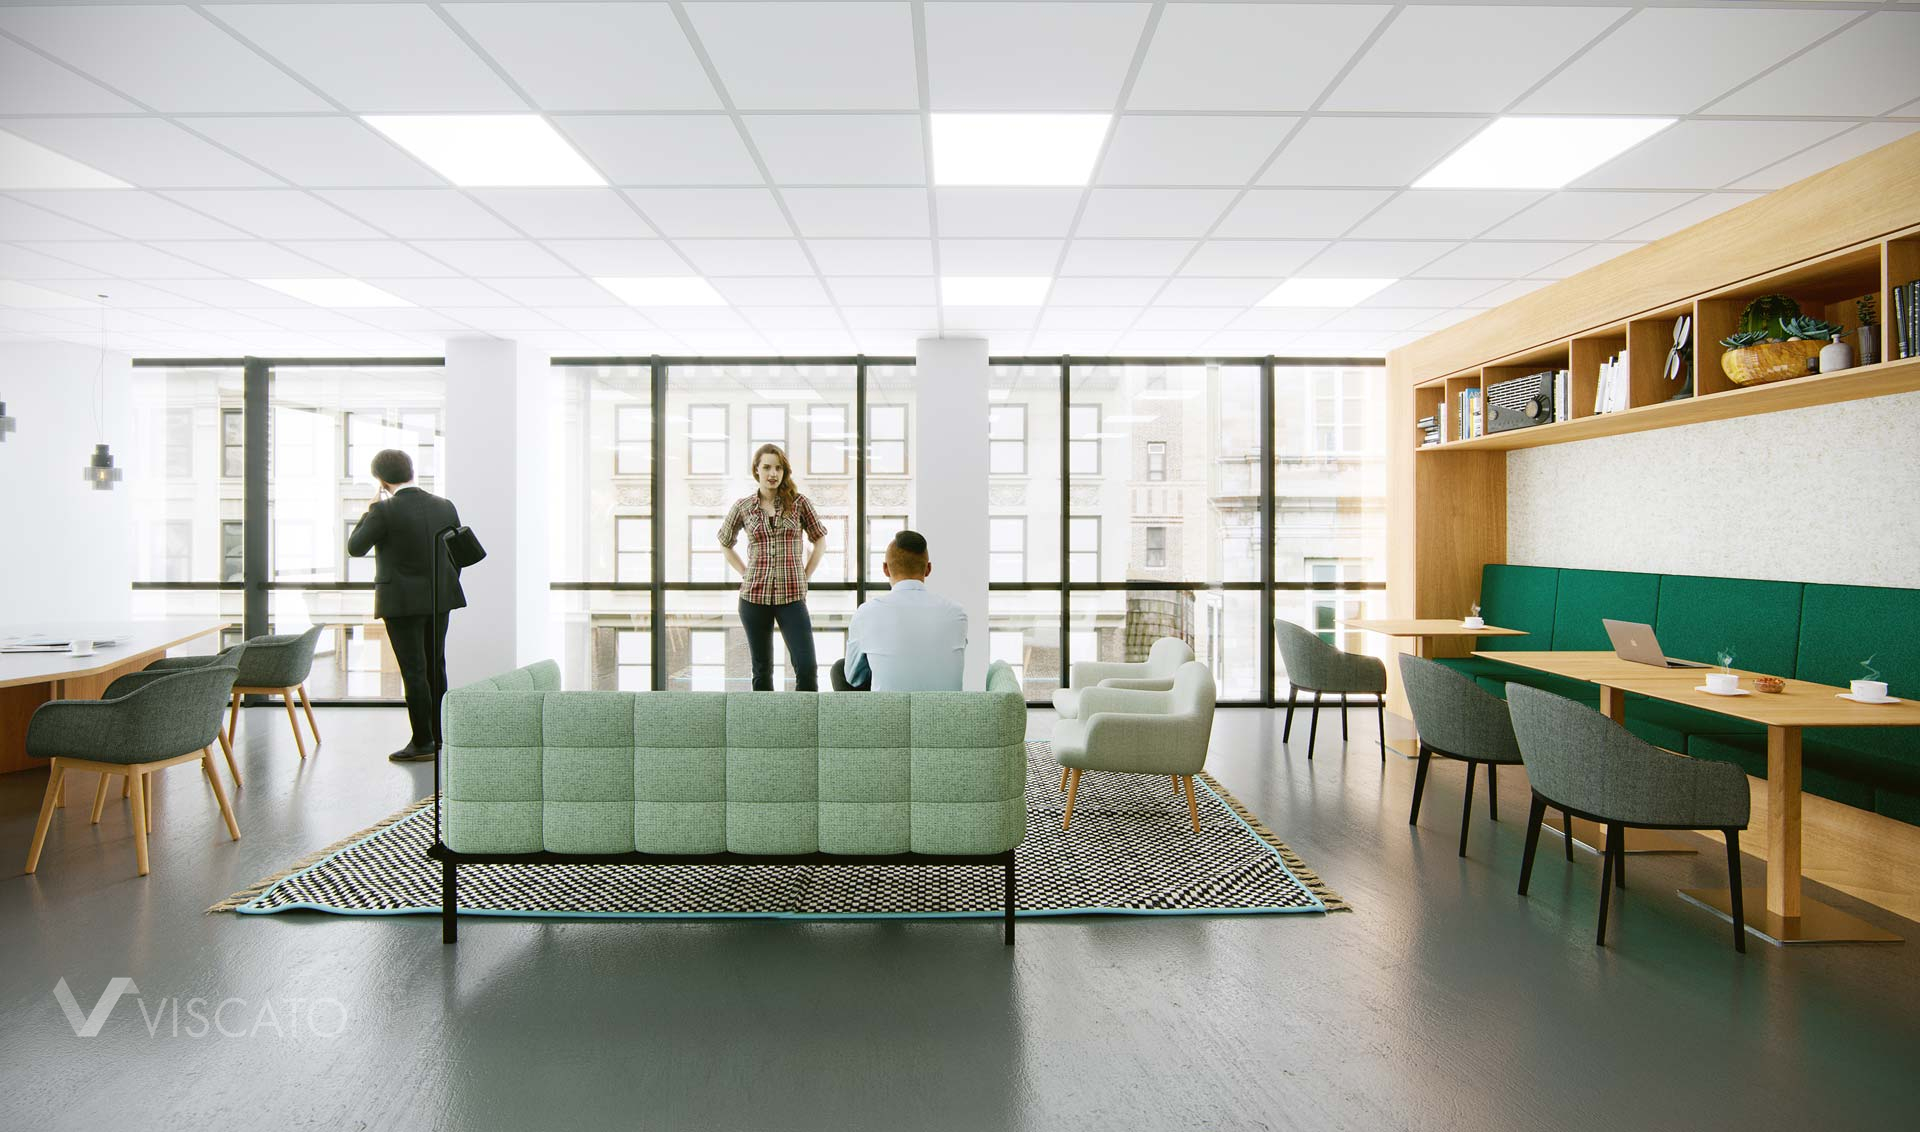 Open space area in a modern office, Viscato 3D